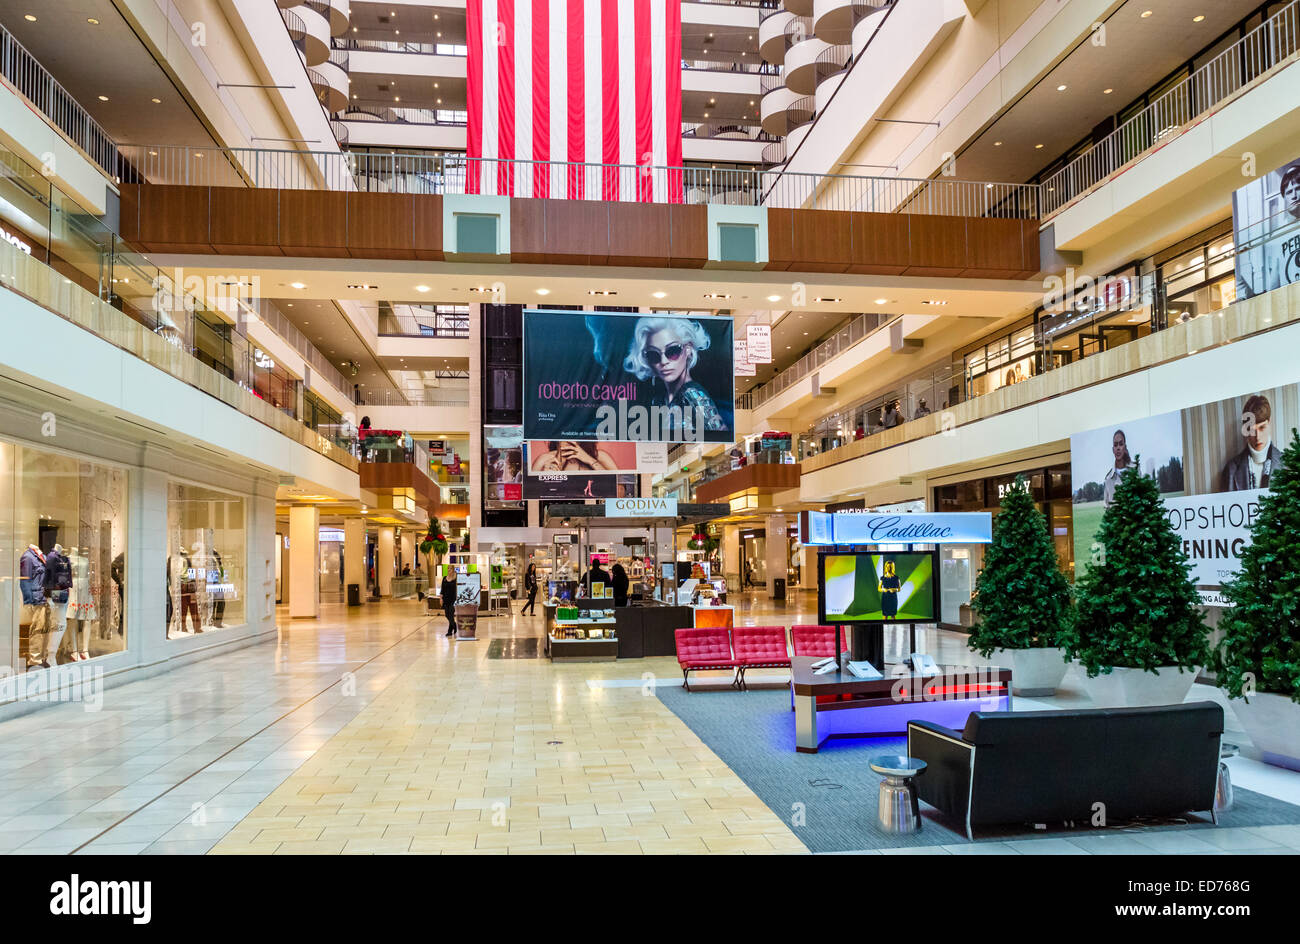 The Galleria Mall in Houston has stores of designer brands like Armani, Gucci, Prada and Apple Store. Check out the full directory and start shopping.